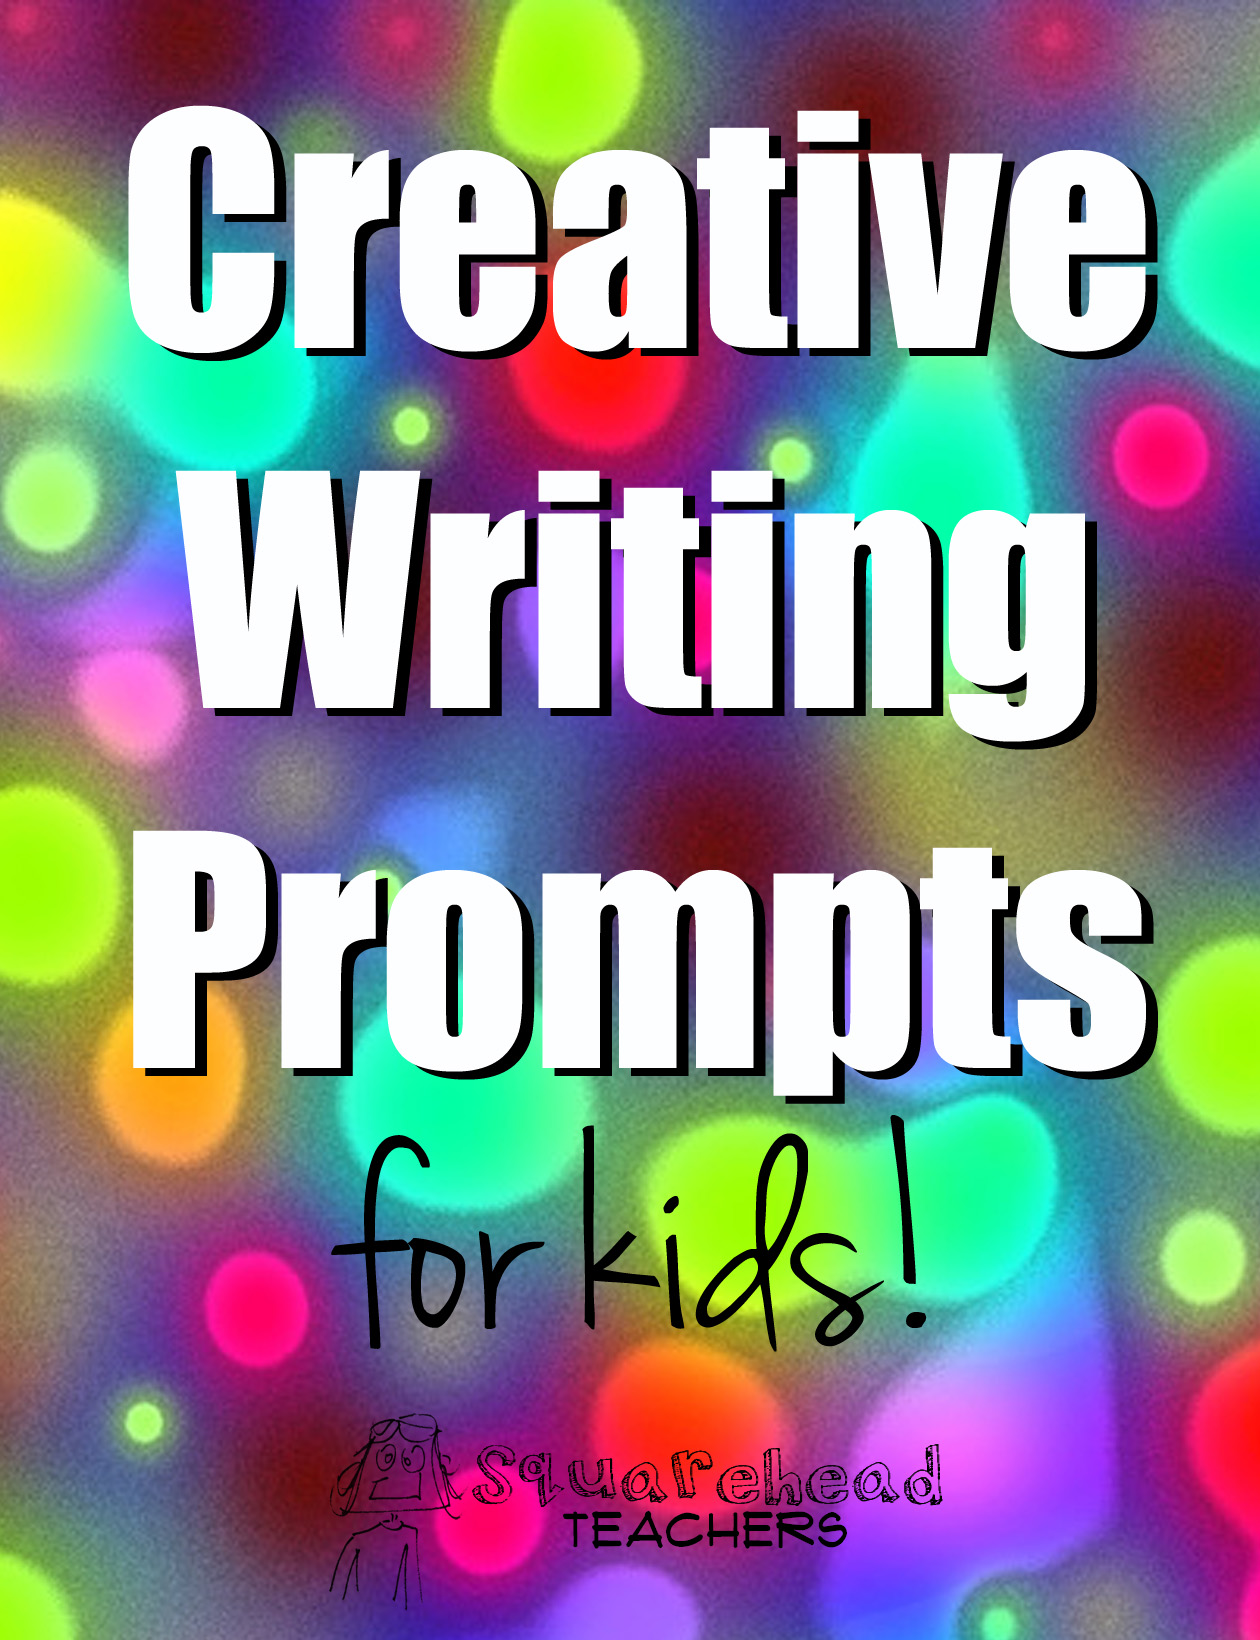 topics for creative writing for highschool students Hone skills with these engaging high school persuasive writing prompts high school students will practice convincing others by creative writing prompts for.